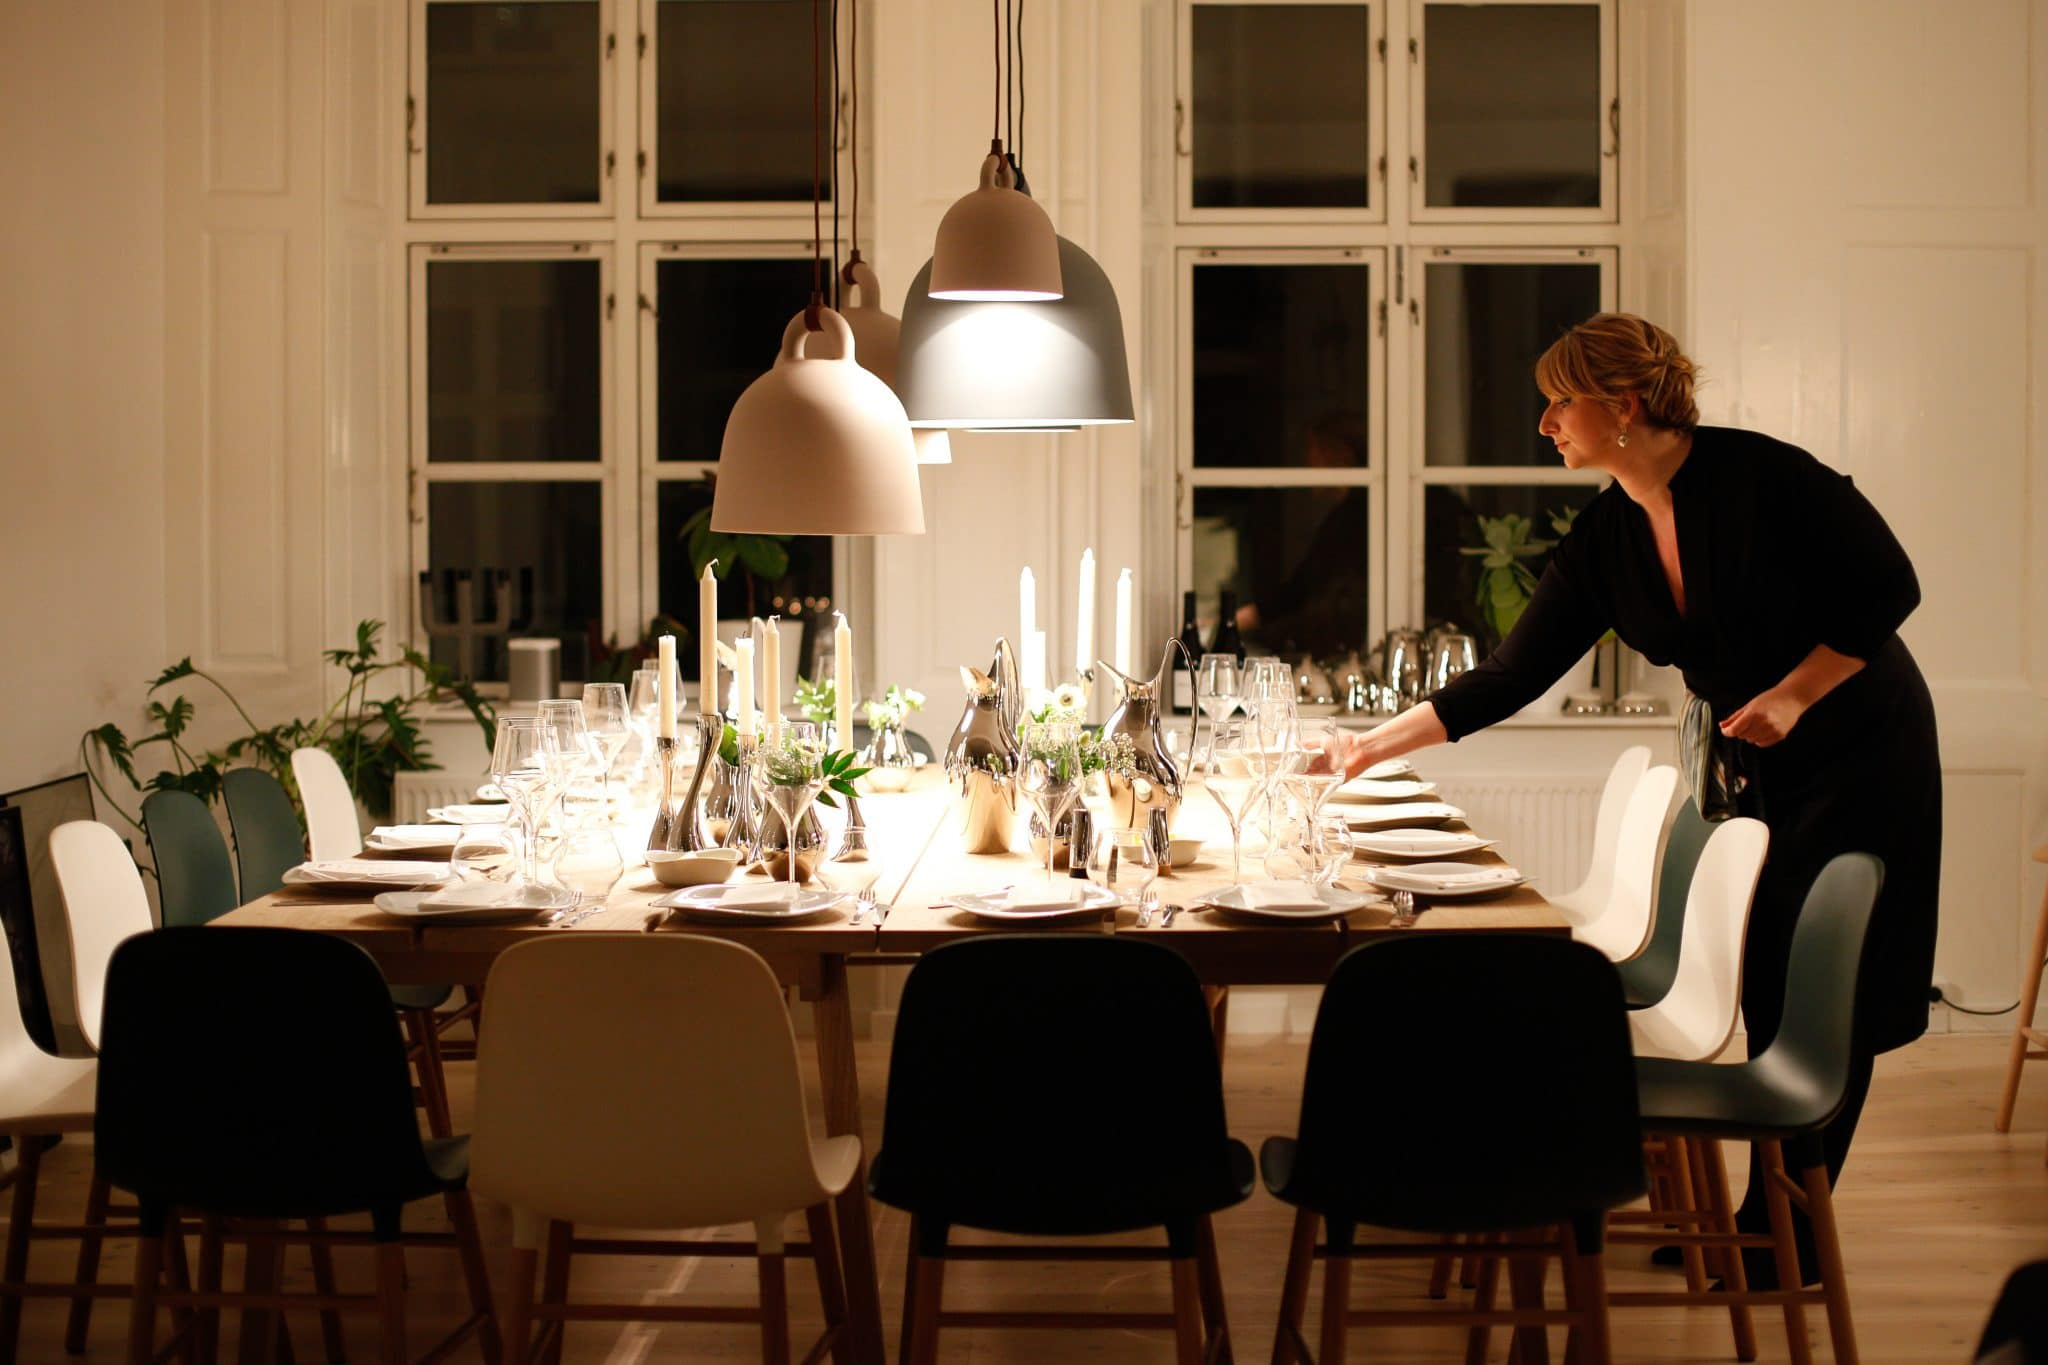 The Unexpected Dinner Guest – An Ex-Etiquette Refresher